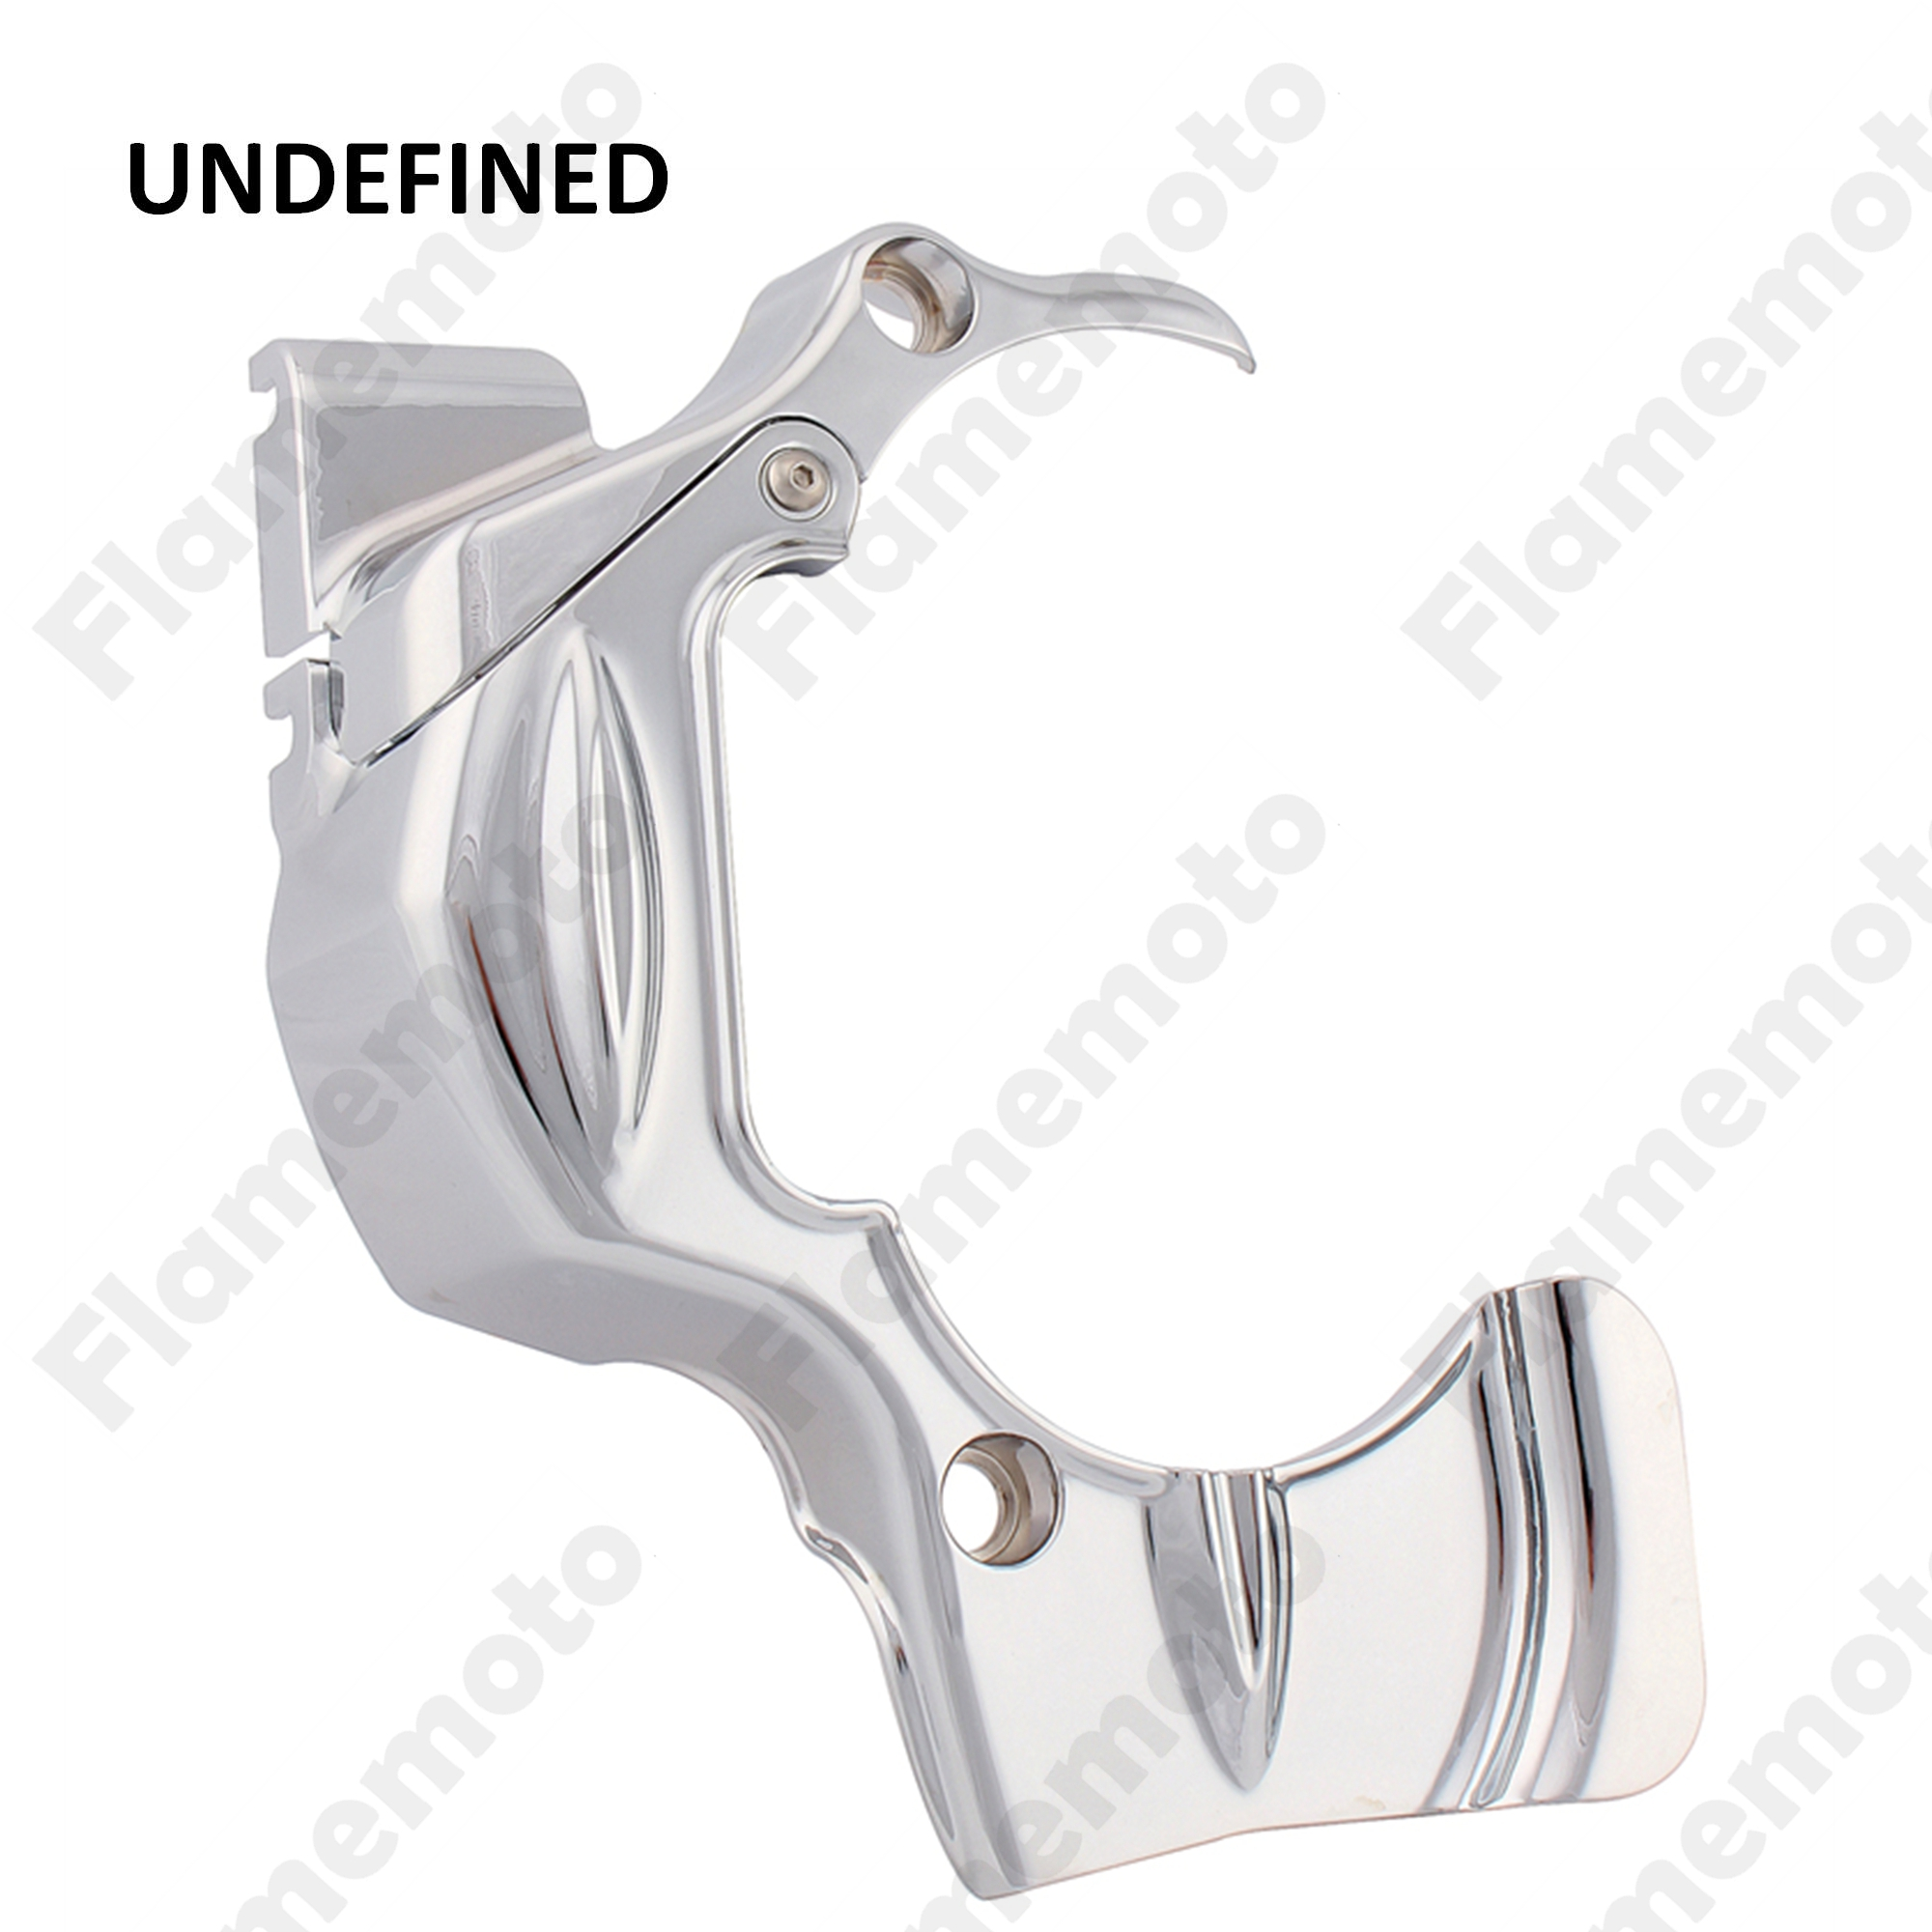 Motorcycle Transmission Shroud Cover Trim For Harley Touring CVO FLHT FLHX FLHR 2009 2010 2011 2012 2013-2016 Chrome UNDEFINED chrome rear trunk lid cover trim for toyota highlander 2009 2010 2011 2012 2013